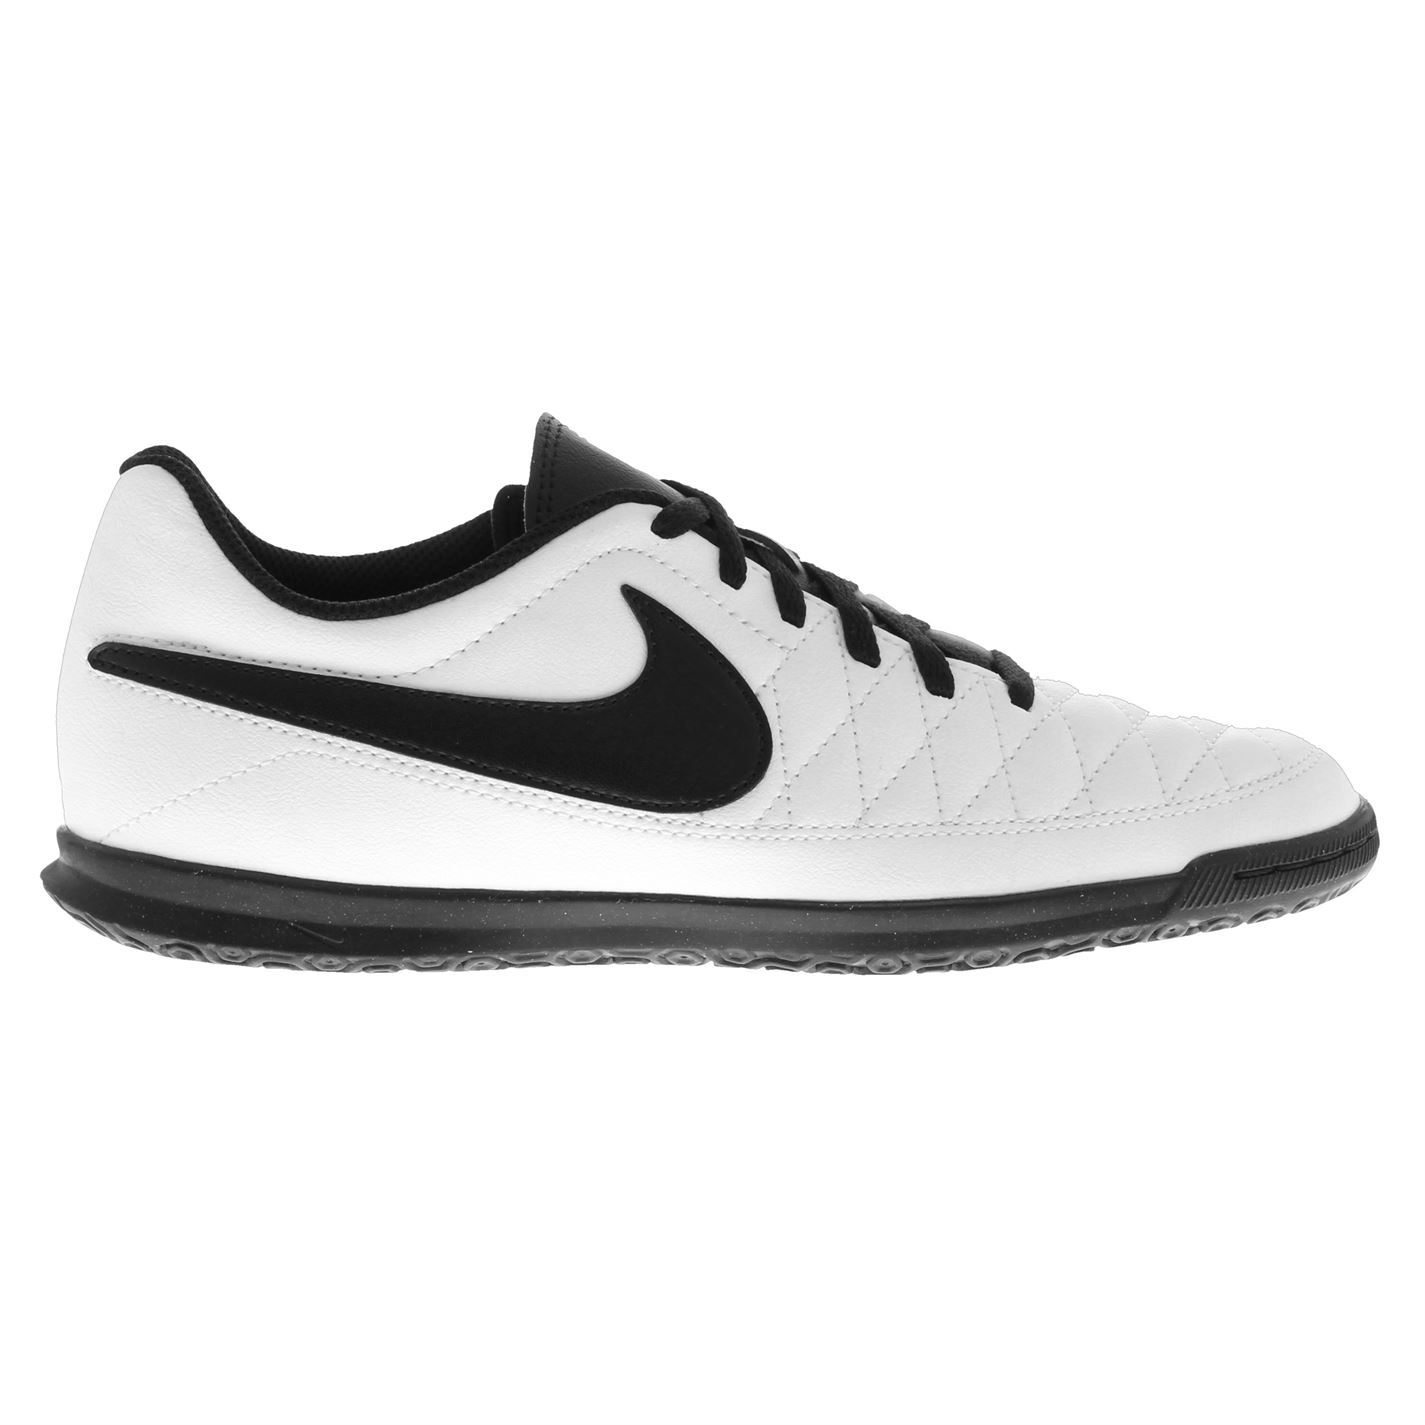 Nike-majestry-Indoor-Football-Baskets-Pour-Homme-Football-Futsal-Chaussures-Baskets-Bottes miniature 28